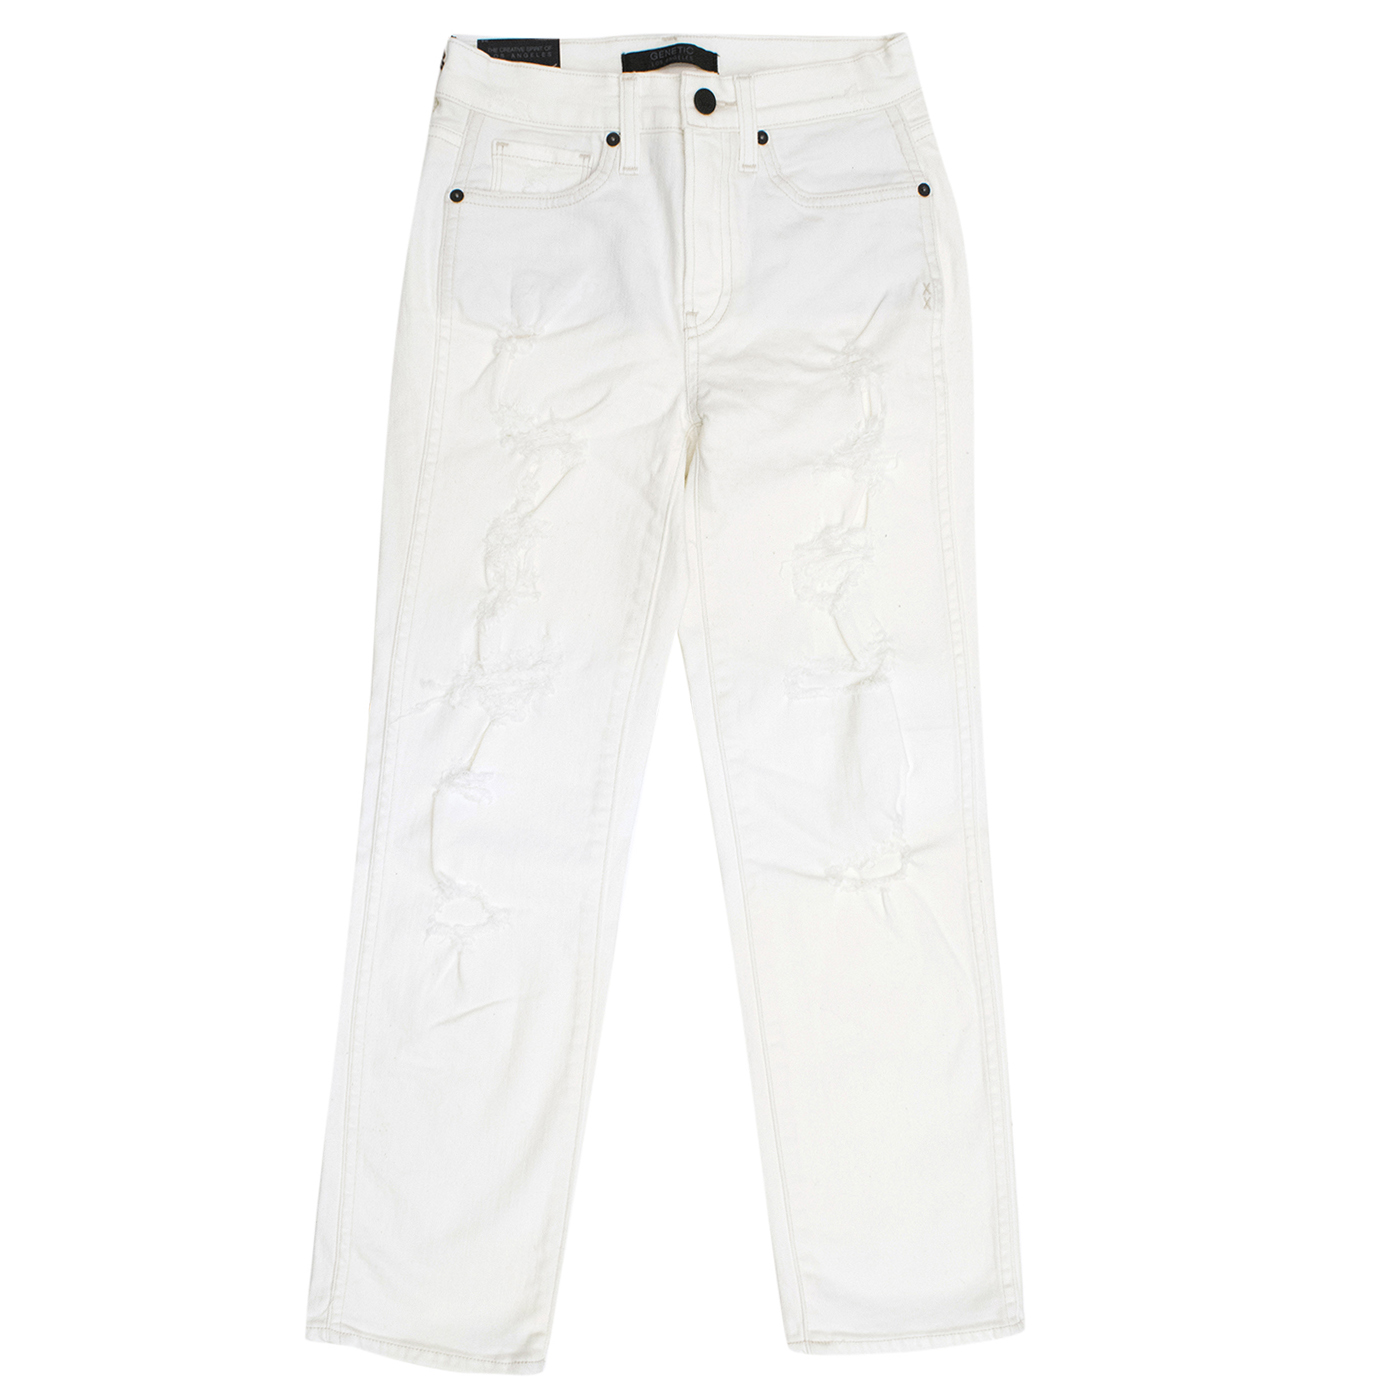 Genetic White Distressed Jeans